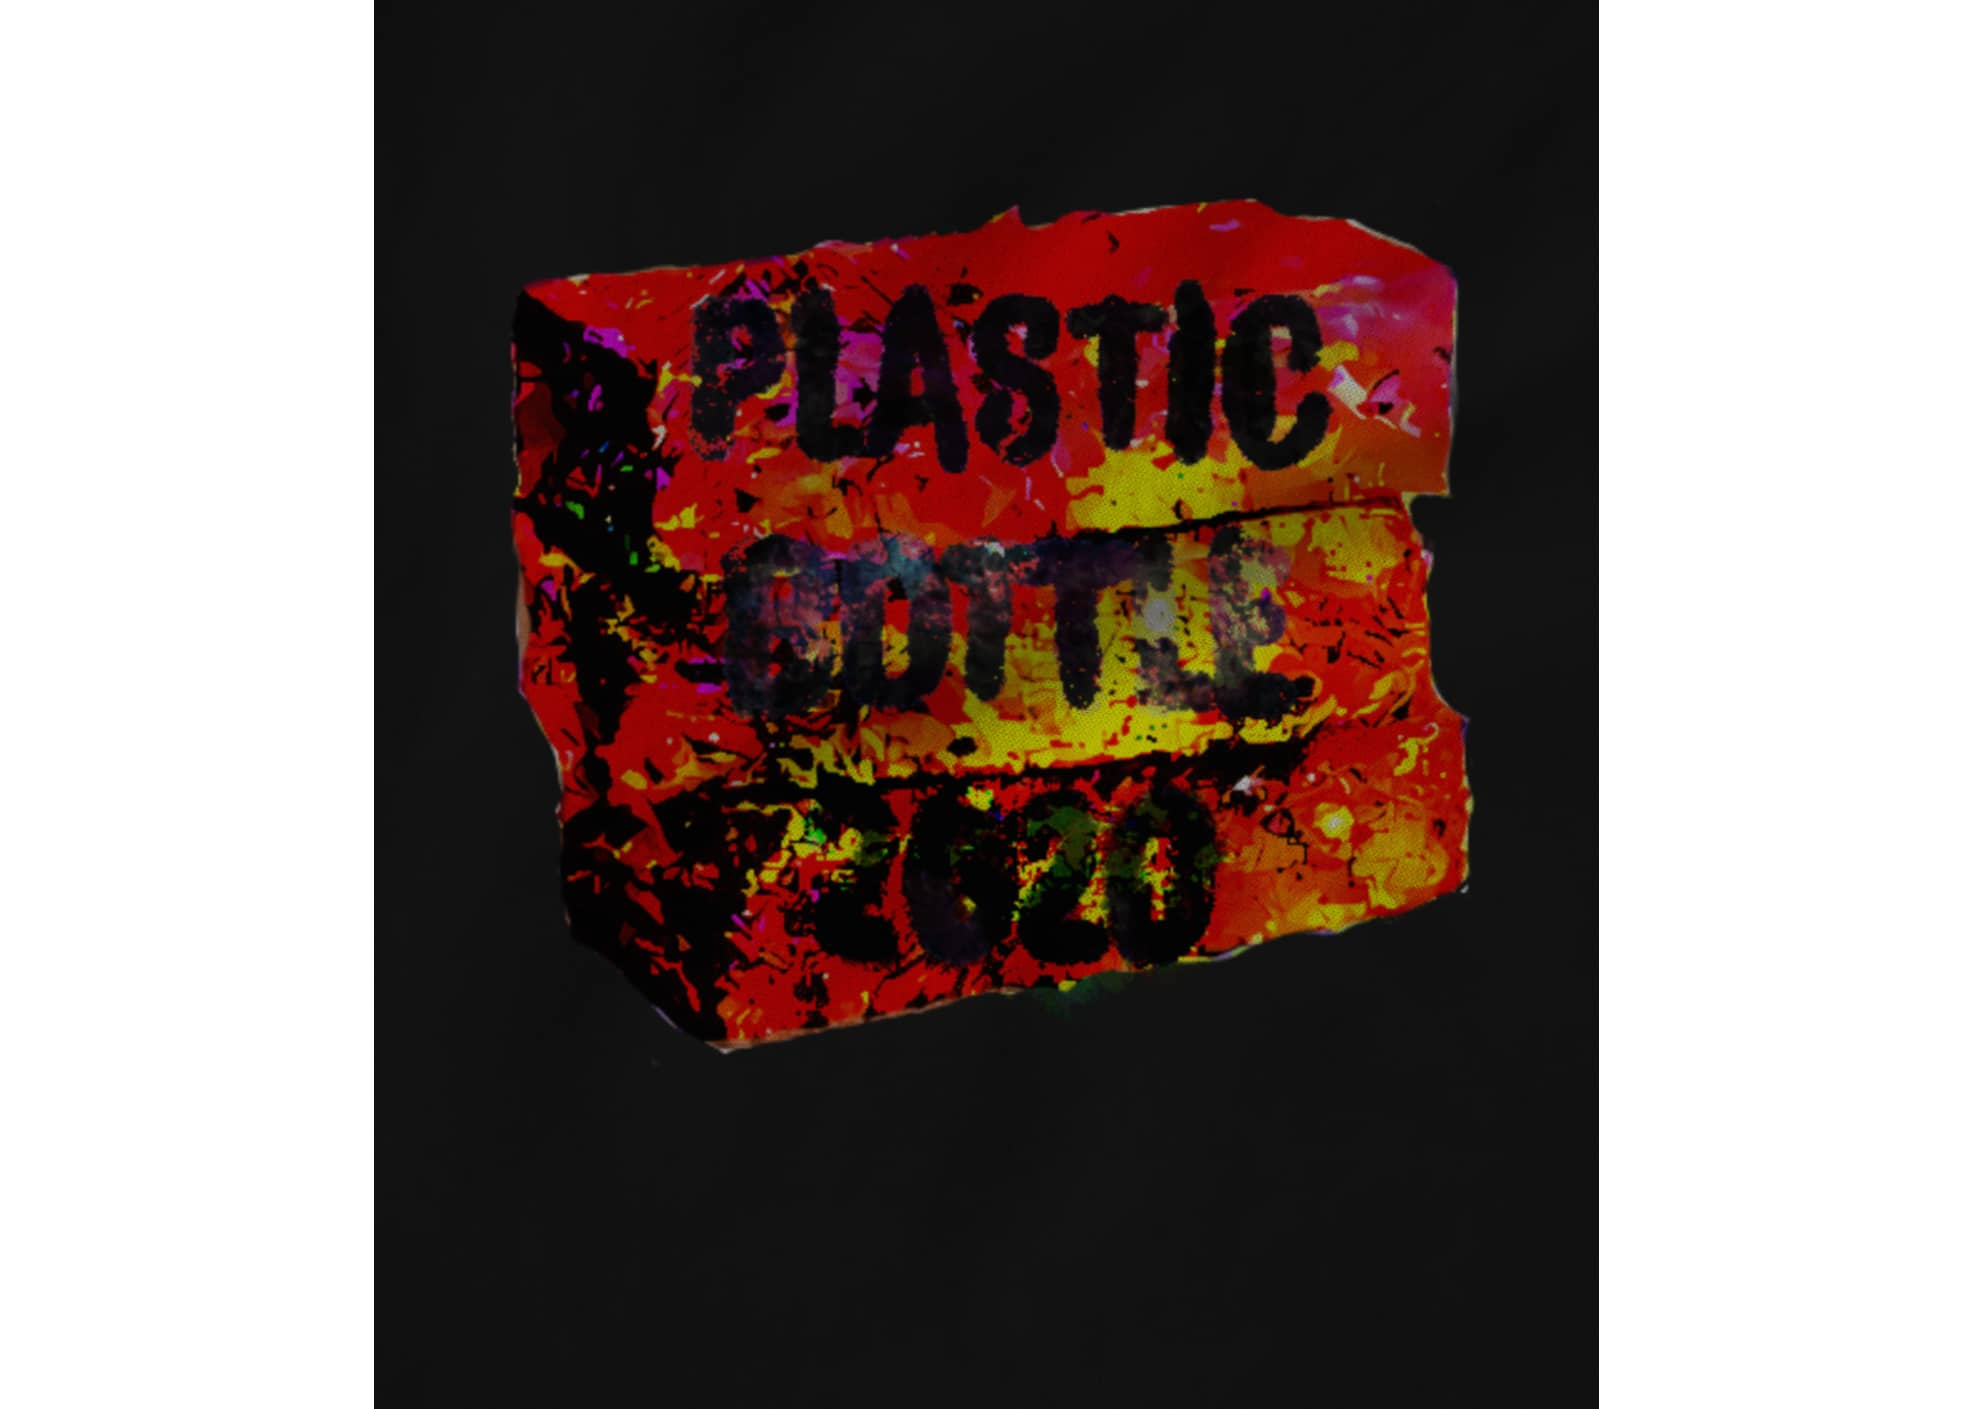 Collections of dead souls plastic bottle 2020 1598688402